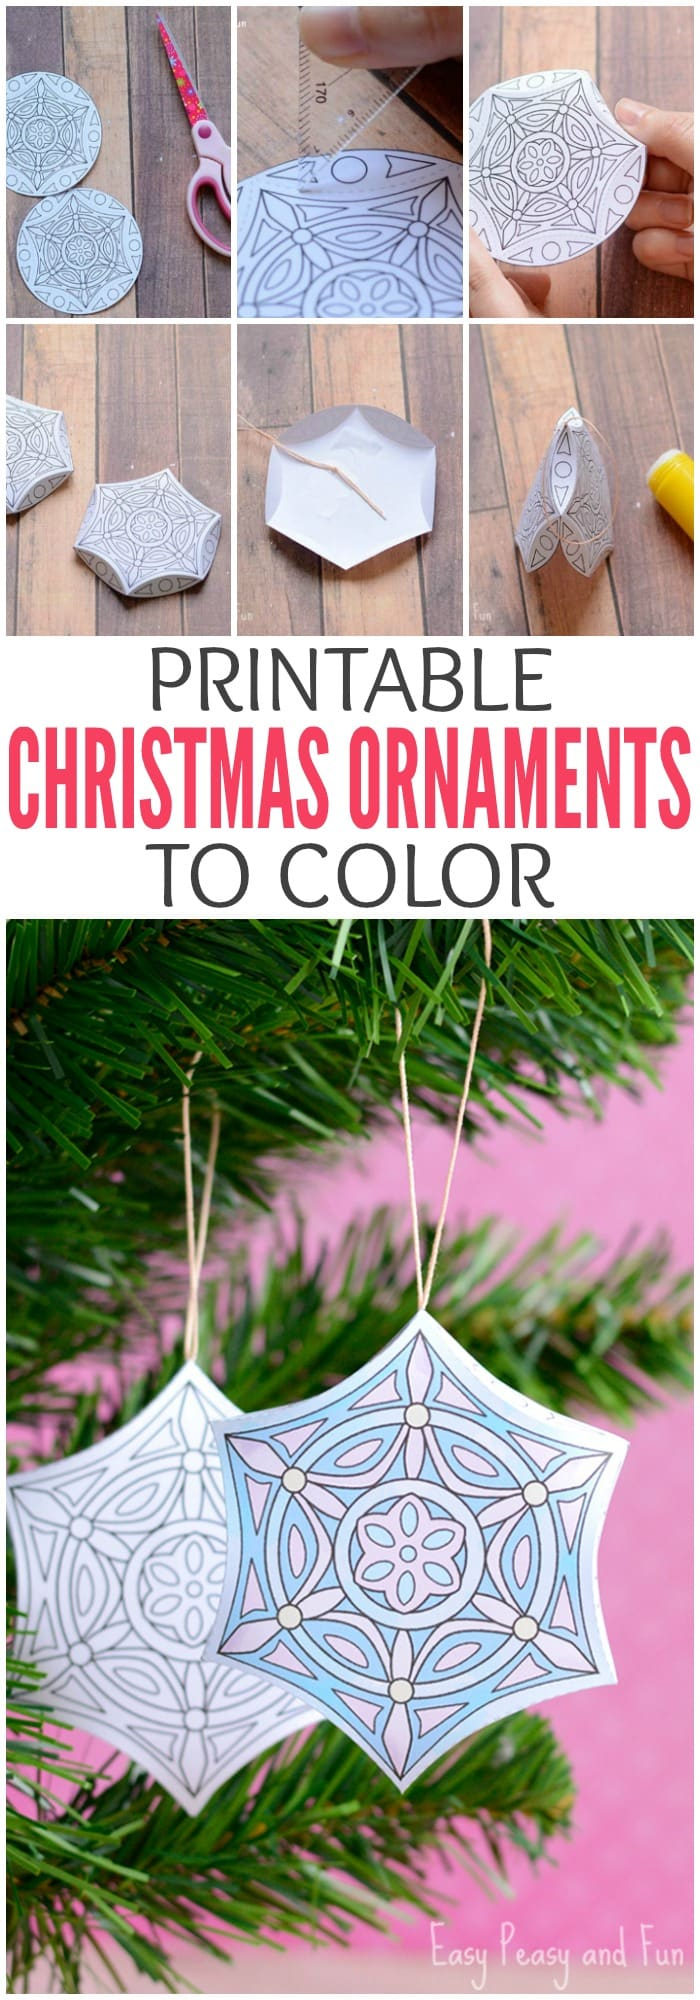 Printable Christmas Ornaments to Color - Easy Peasy and Fun